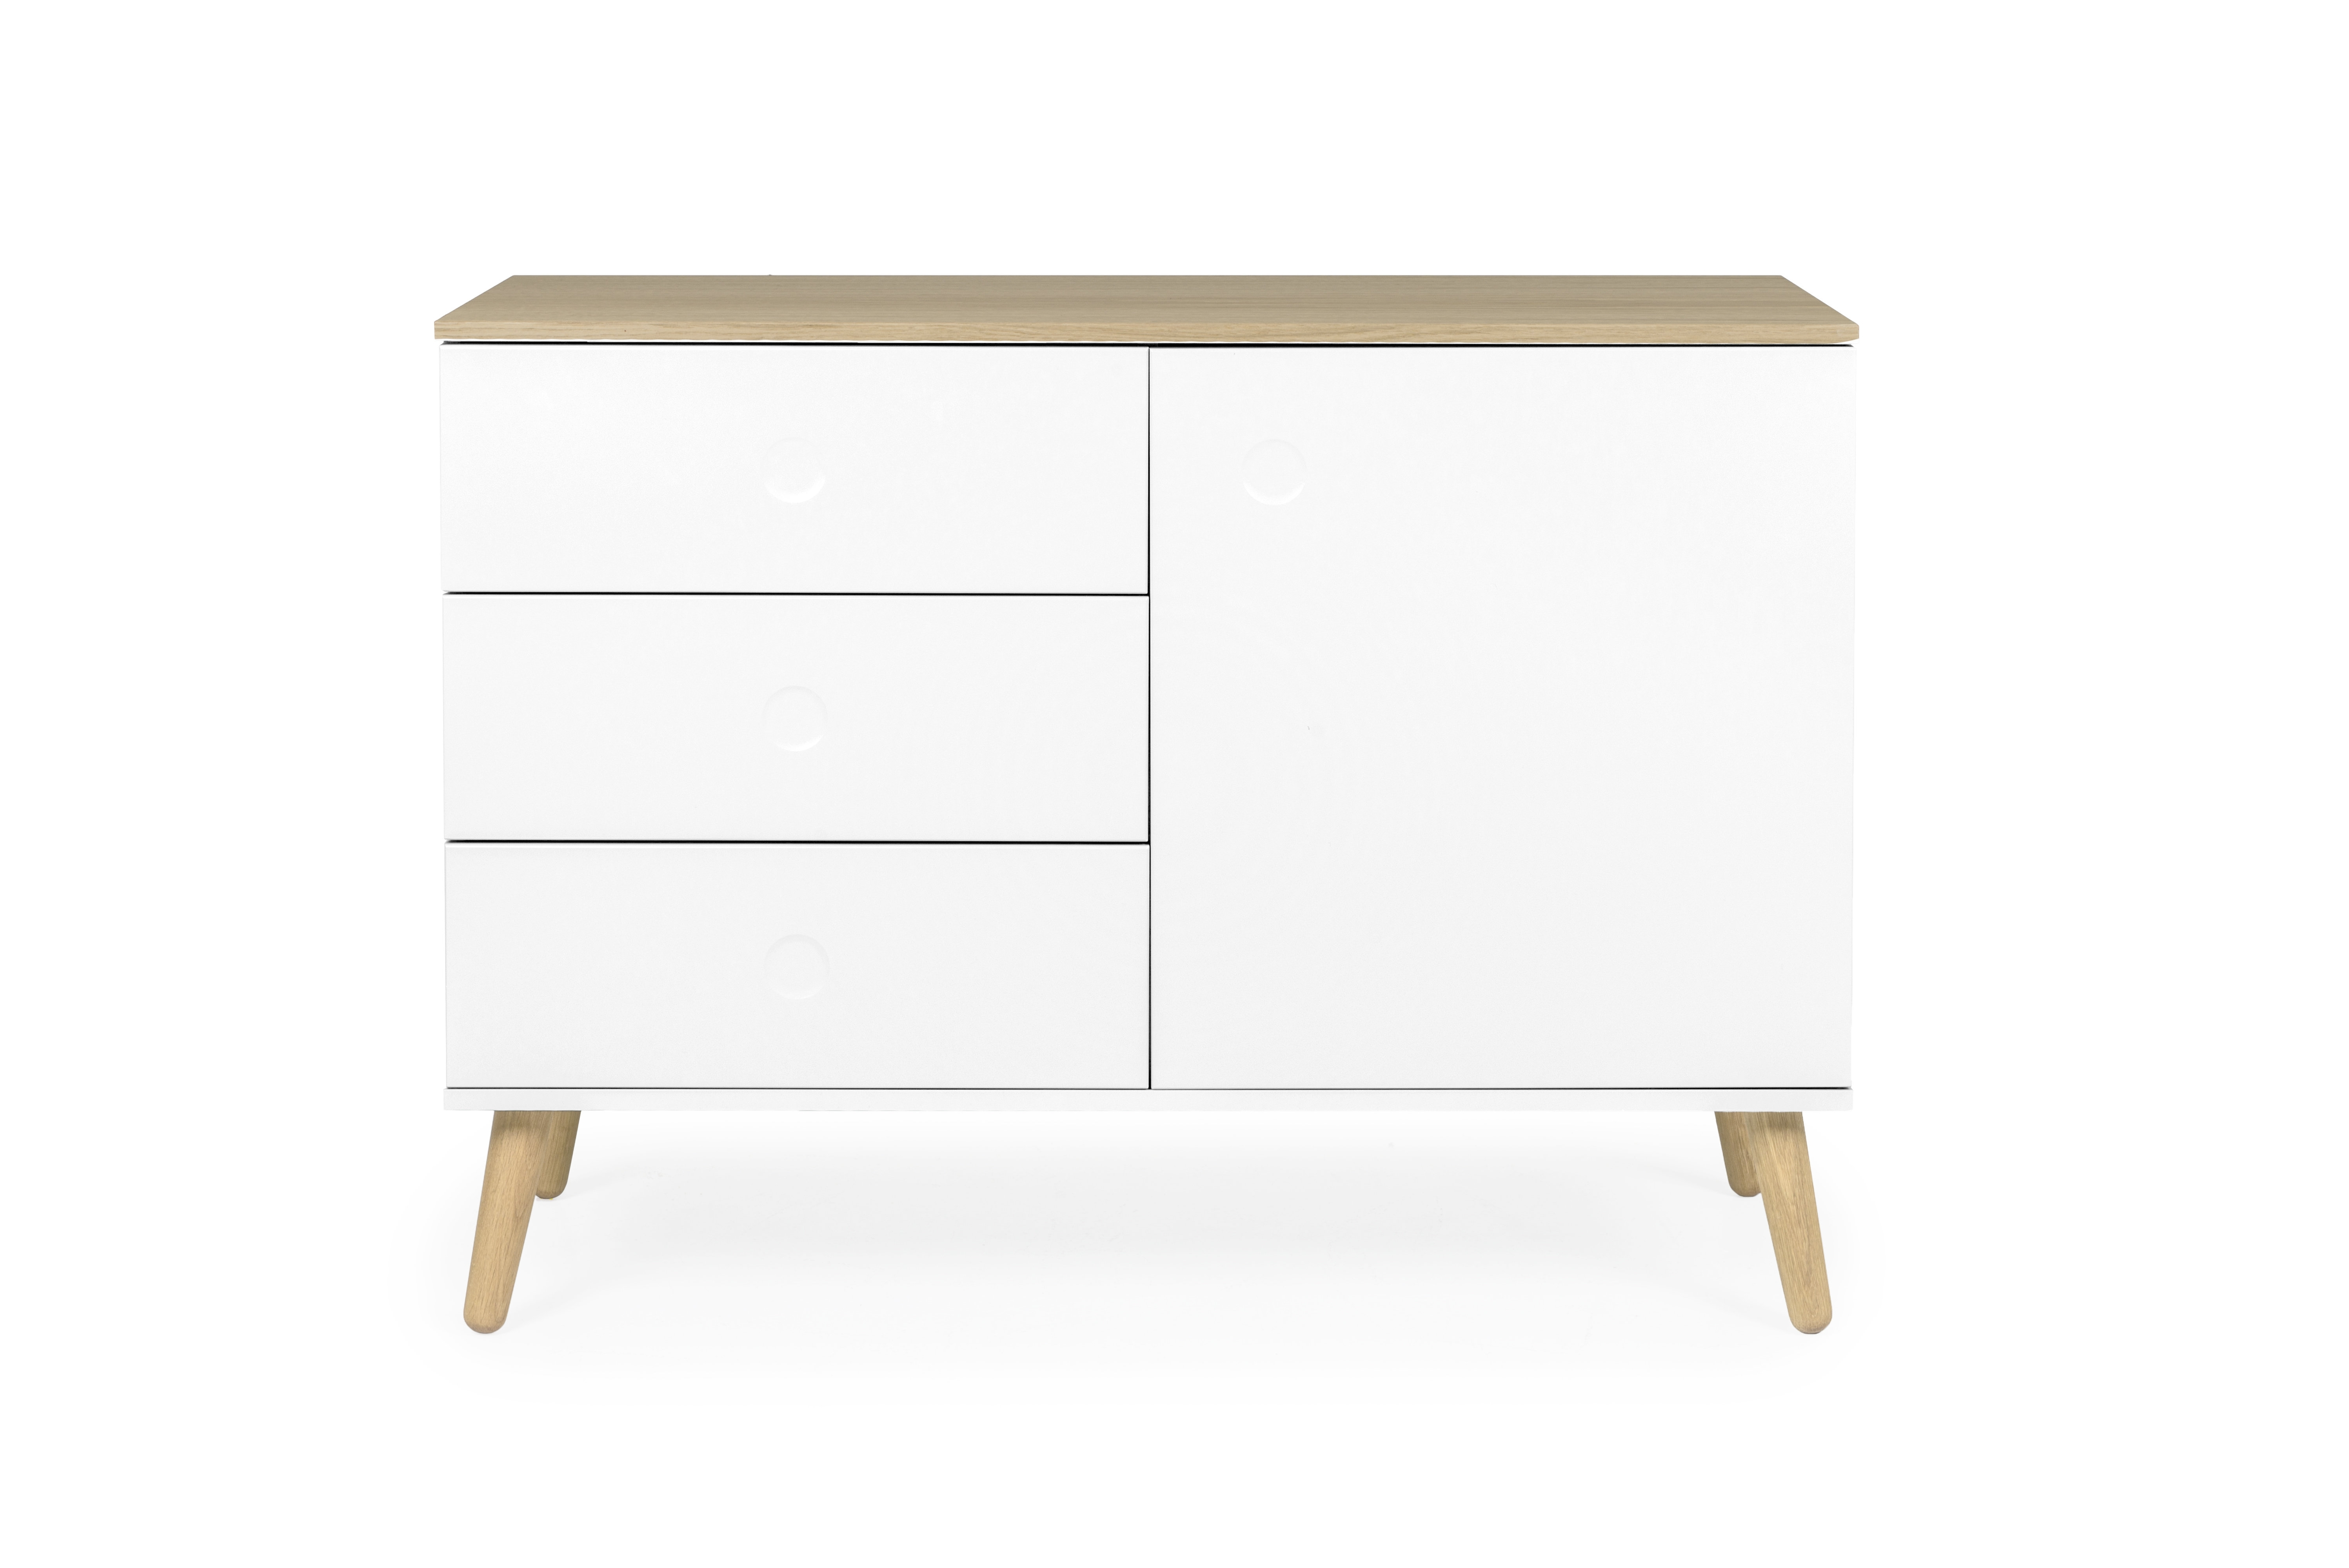 Inspiration about Tenzo Dot 1 Door 3 Drawer Sideboard & Reviews | Wayfair Pertaining To Most Popular 3 Door 3 Drawer Metal Inserts Sideboards (#15 of 20)